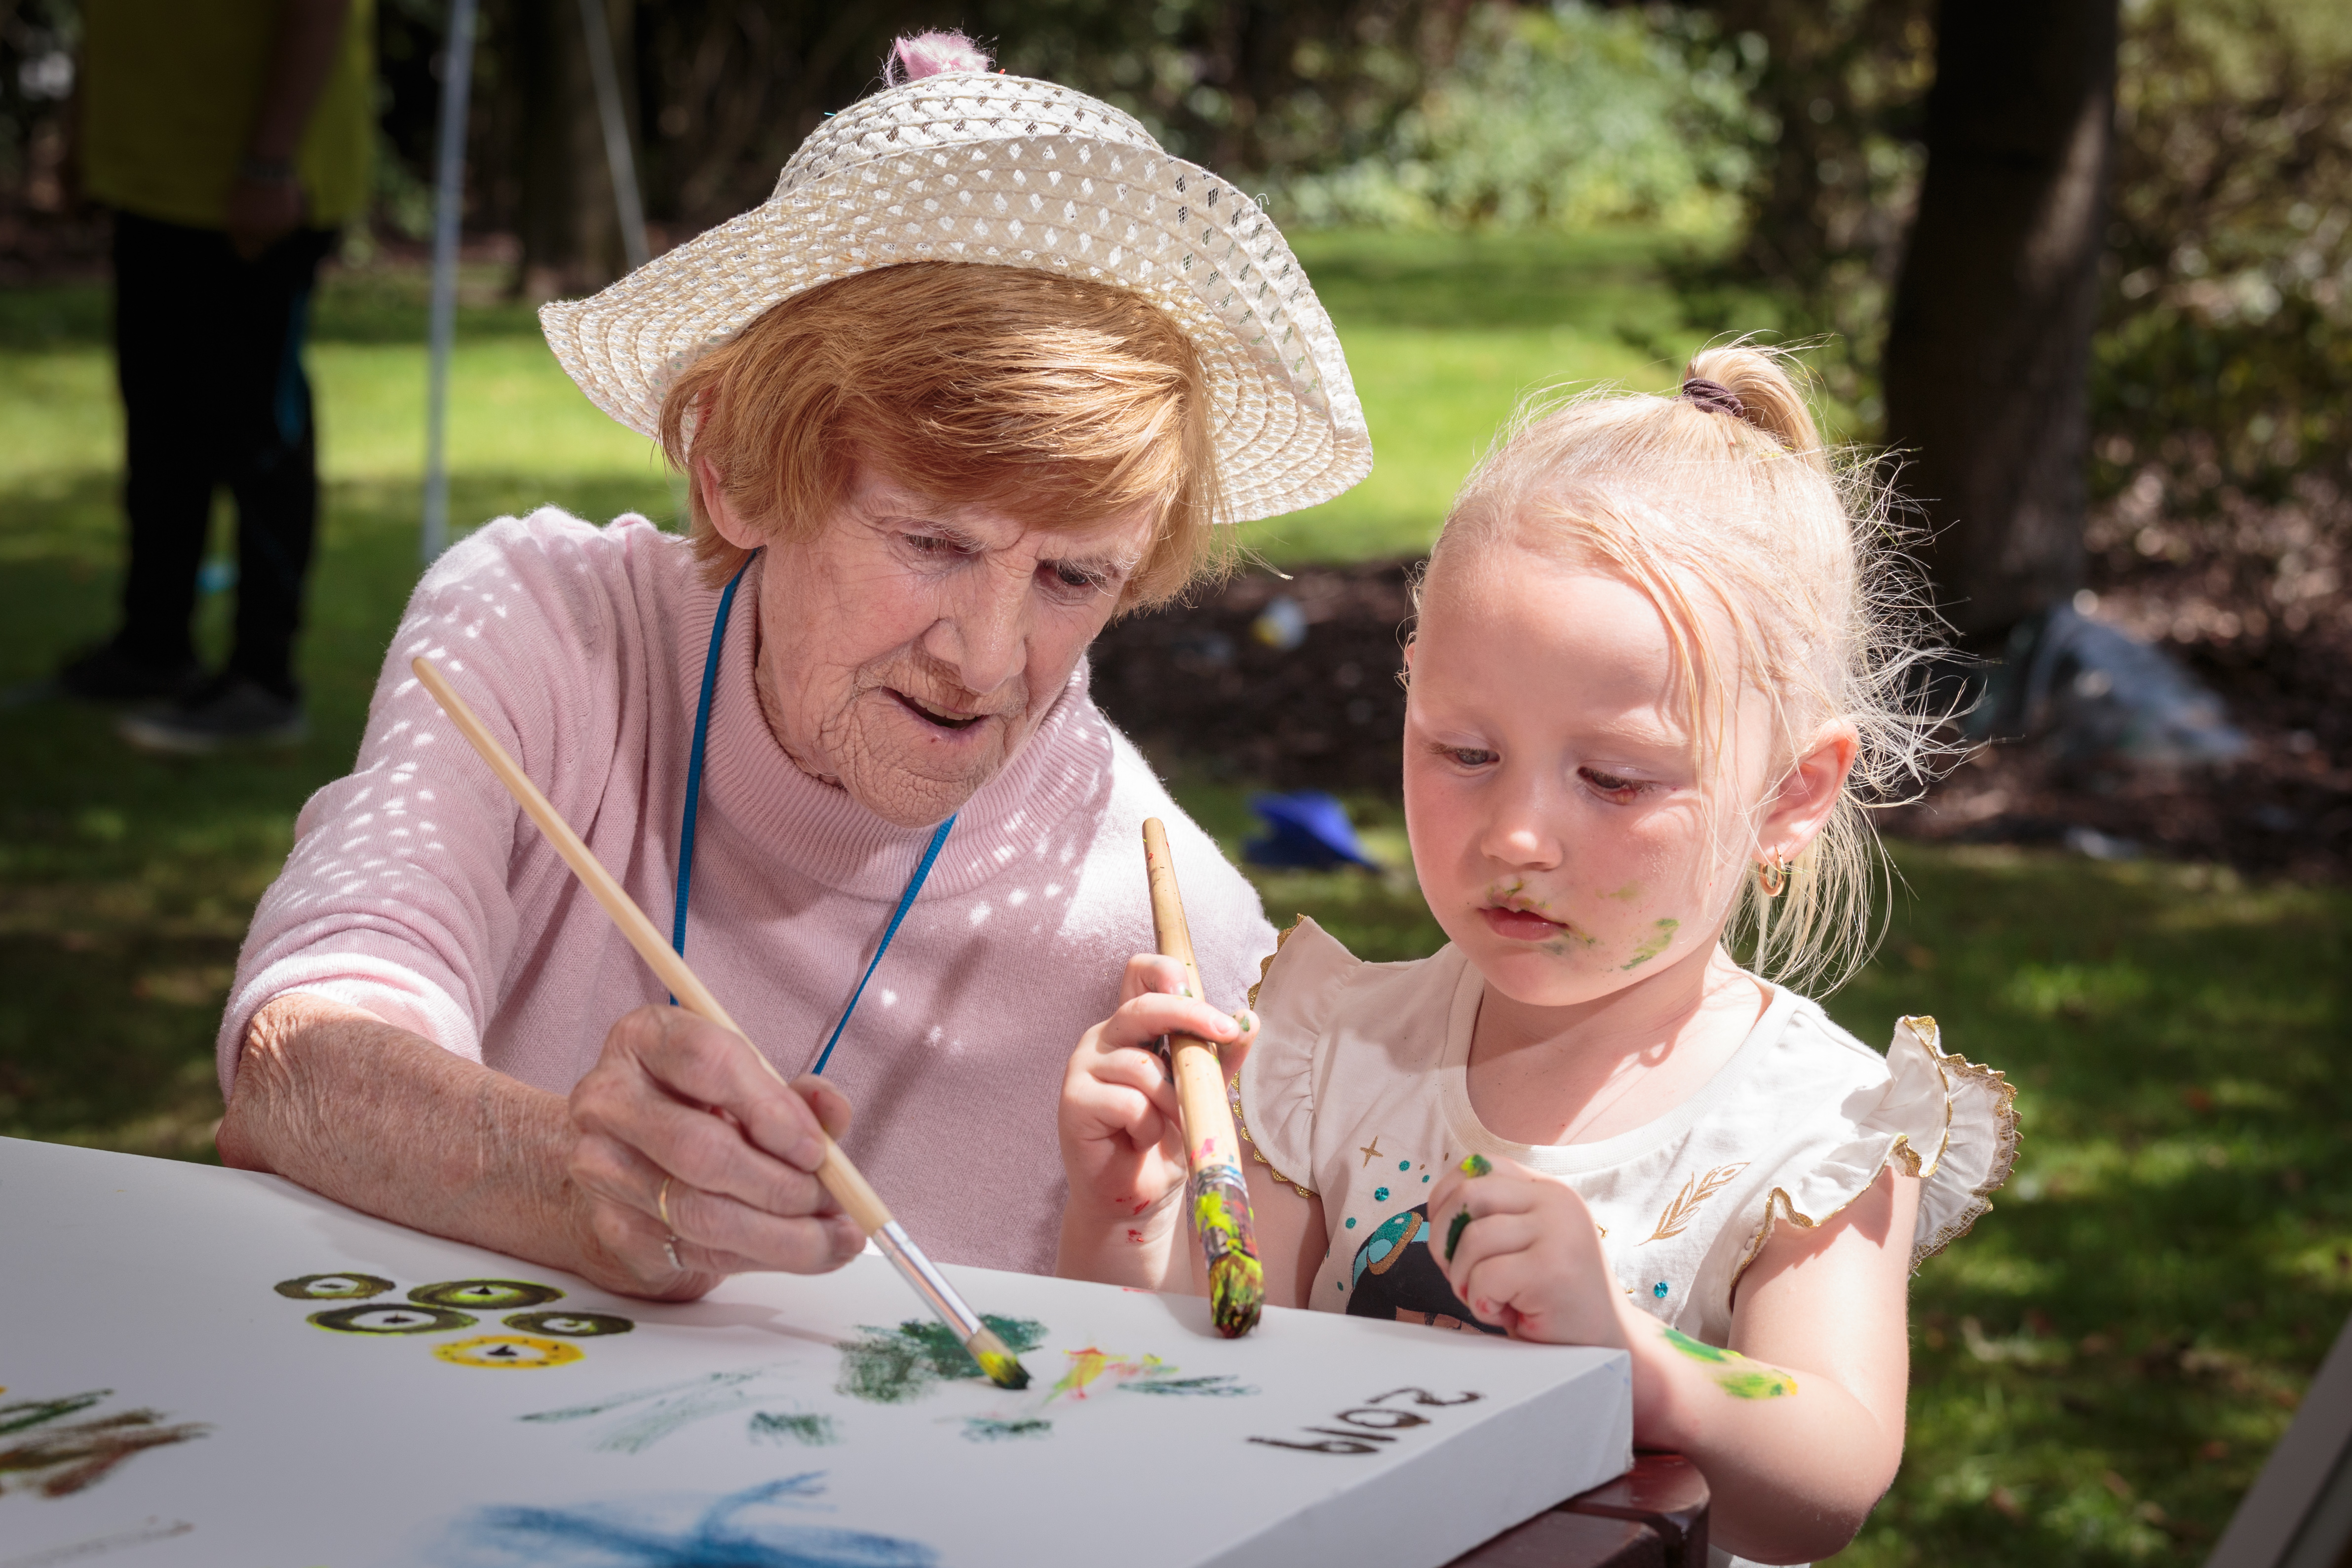 Painting with child